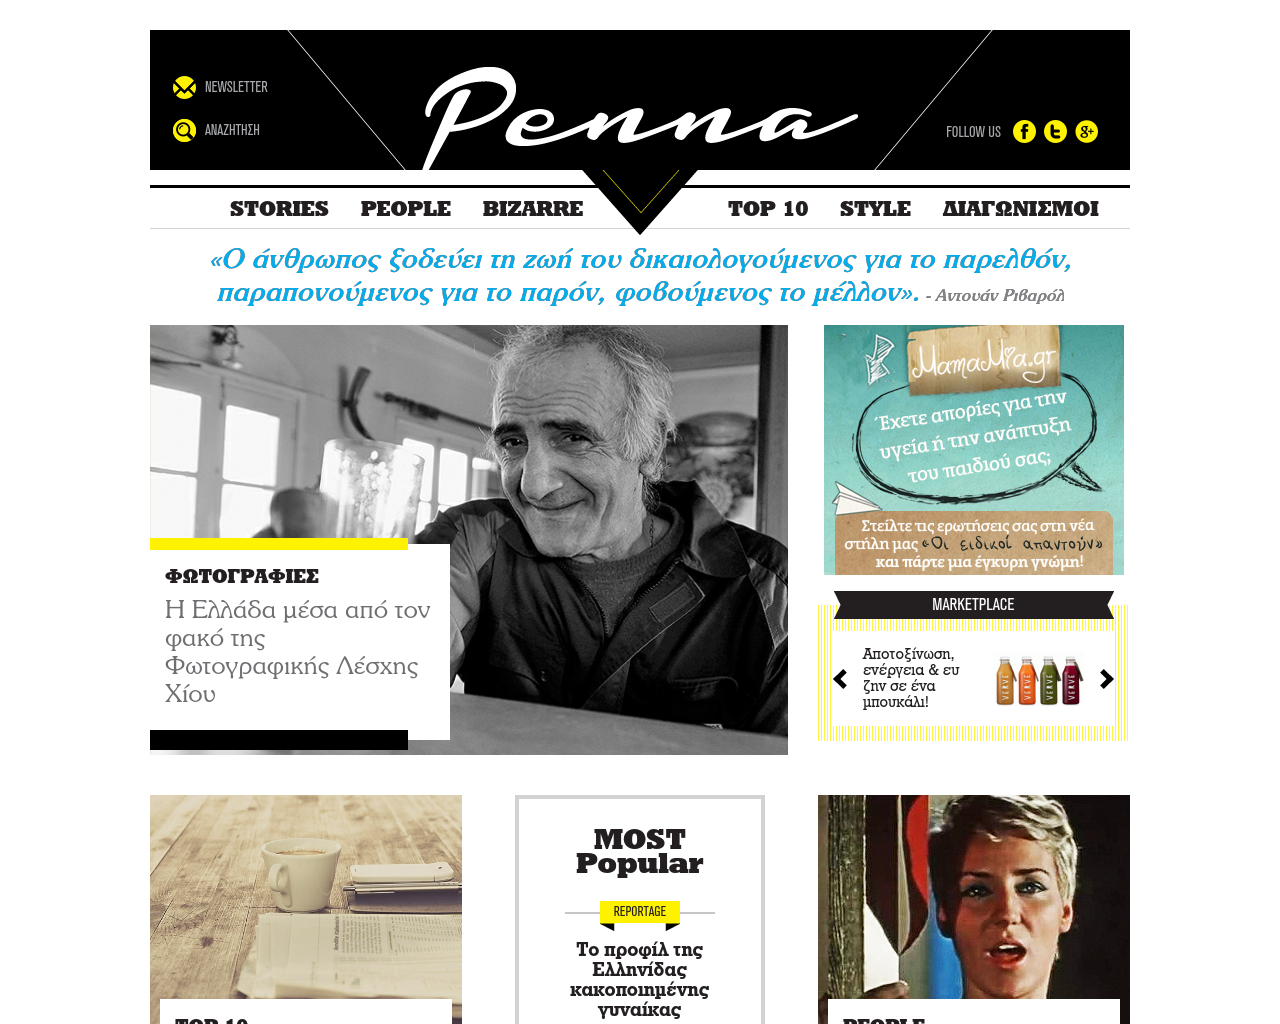 Penna-Advertising-Reviews-Pricing